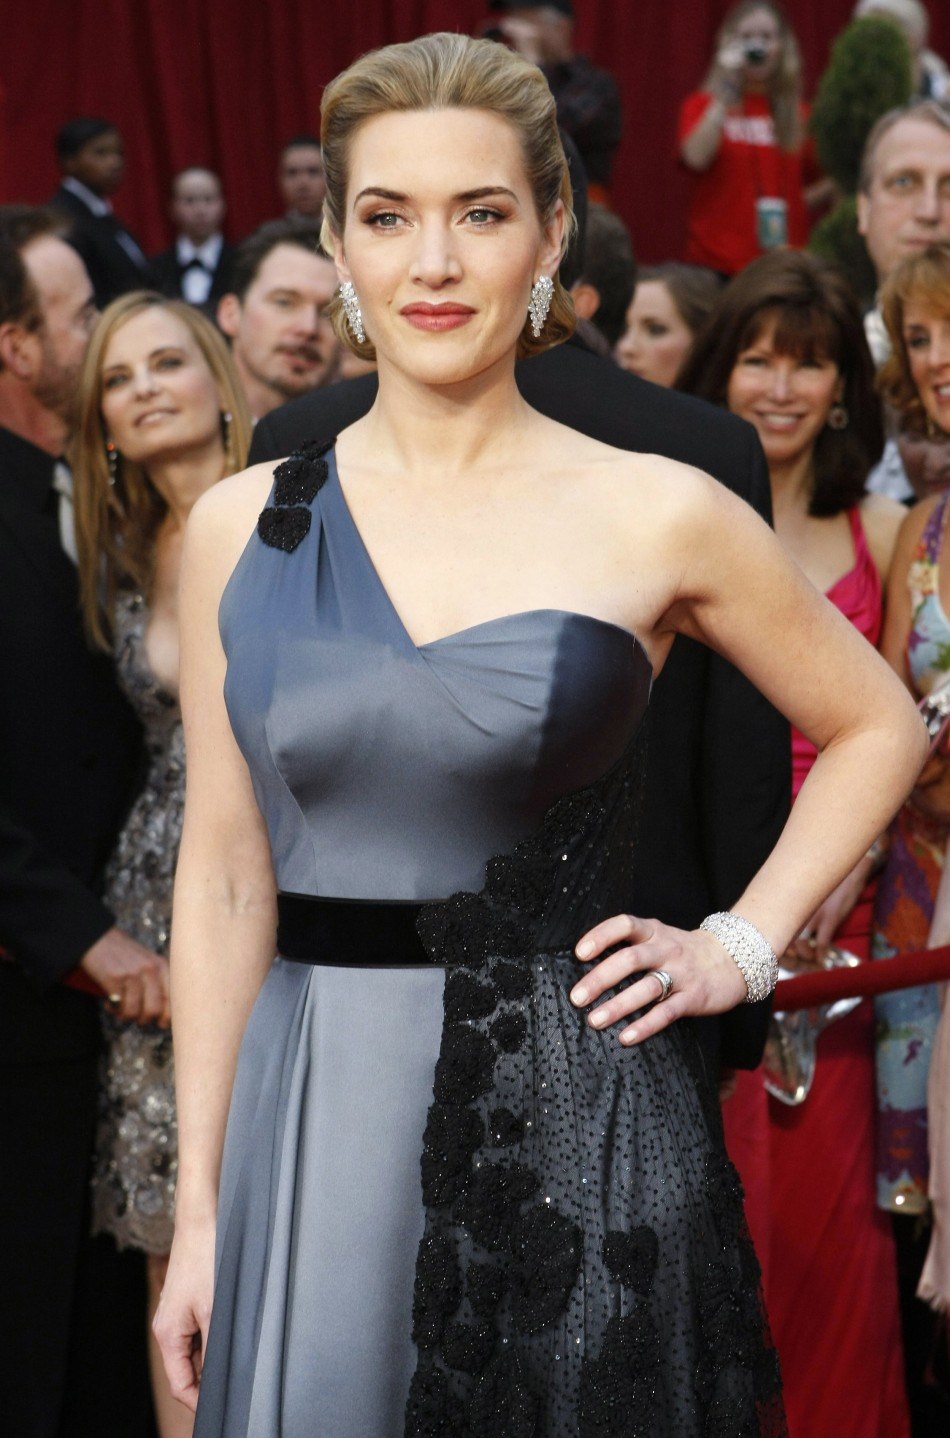 Kate Winslet, best actress nominee for quotThe Reader,quot arrives at 81st Academy Awards in Hollywood